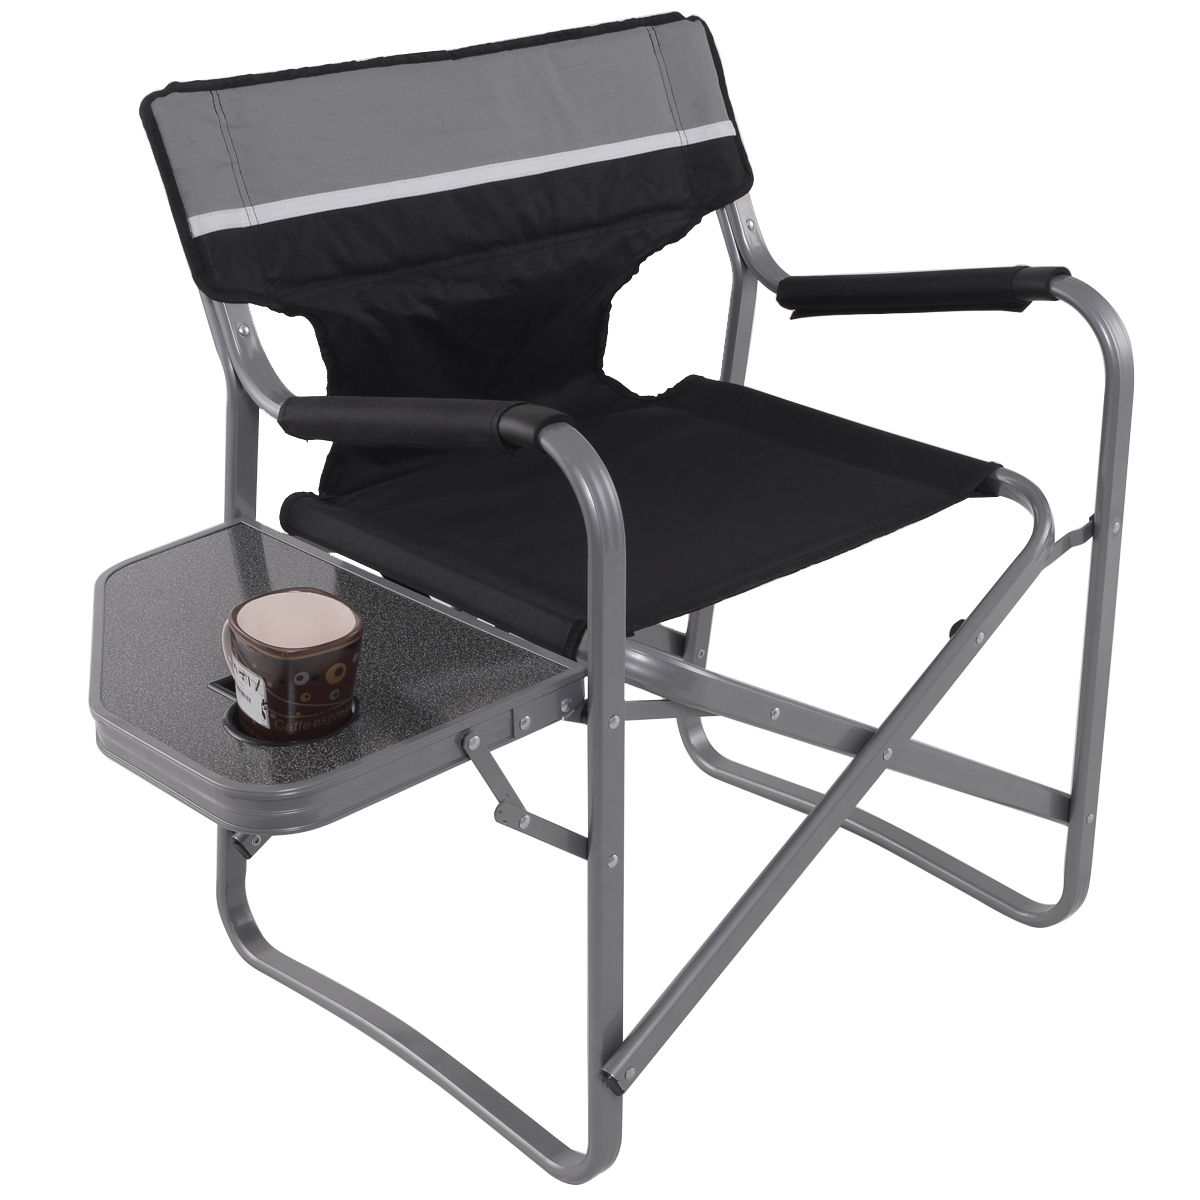 Folding Director Chair W/Side Table Cup Holder